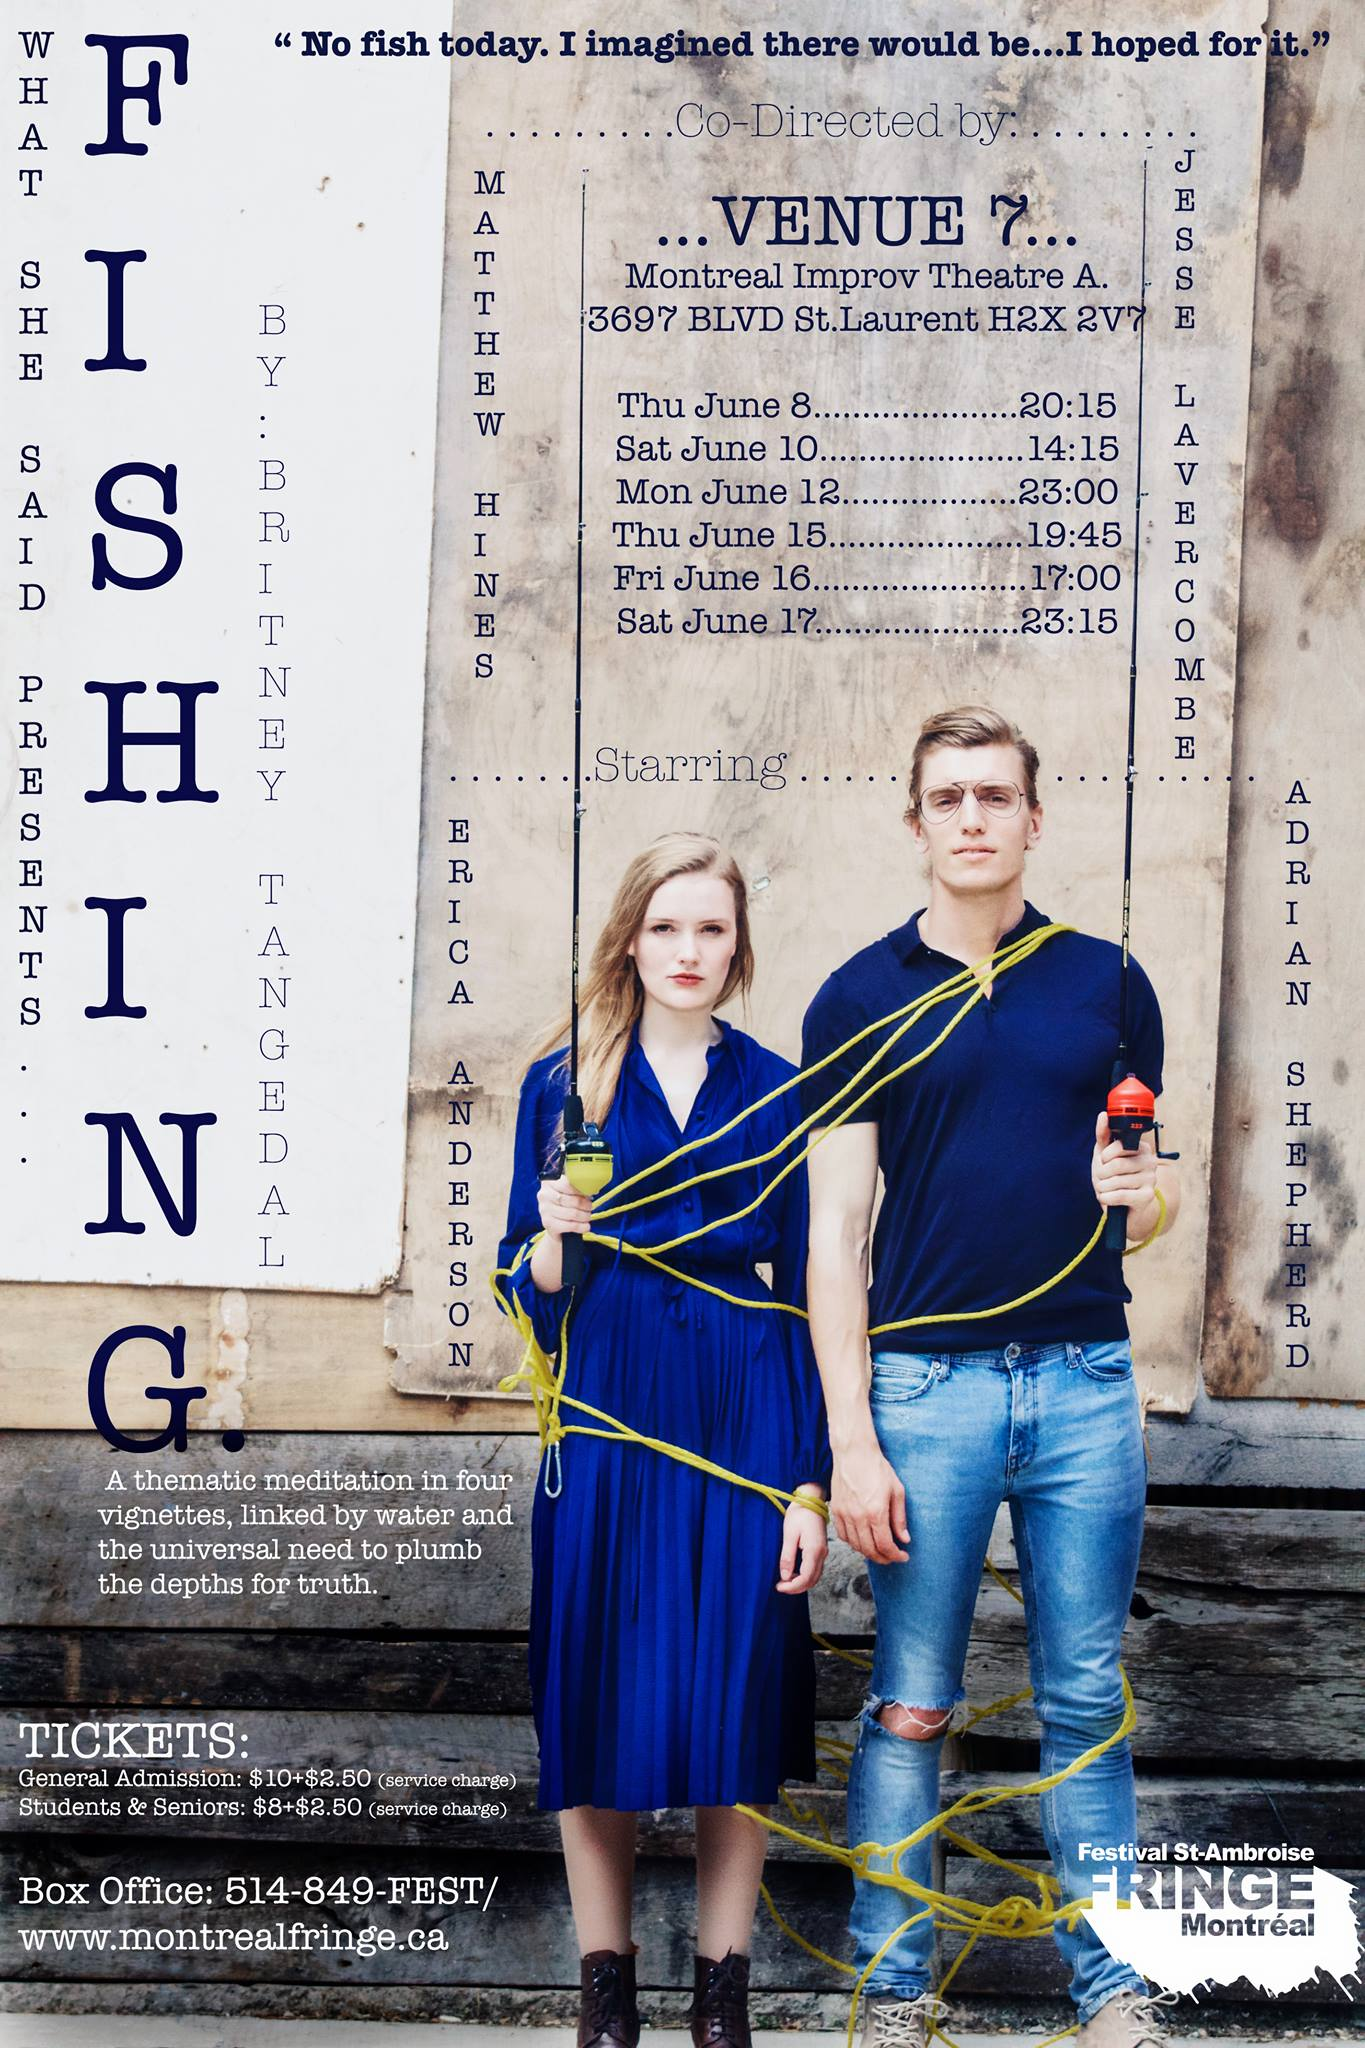 Fishing at The Montreal Fringe, Starring Erica Anderson and Adrian Shepard